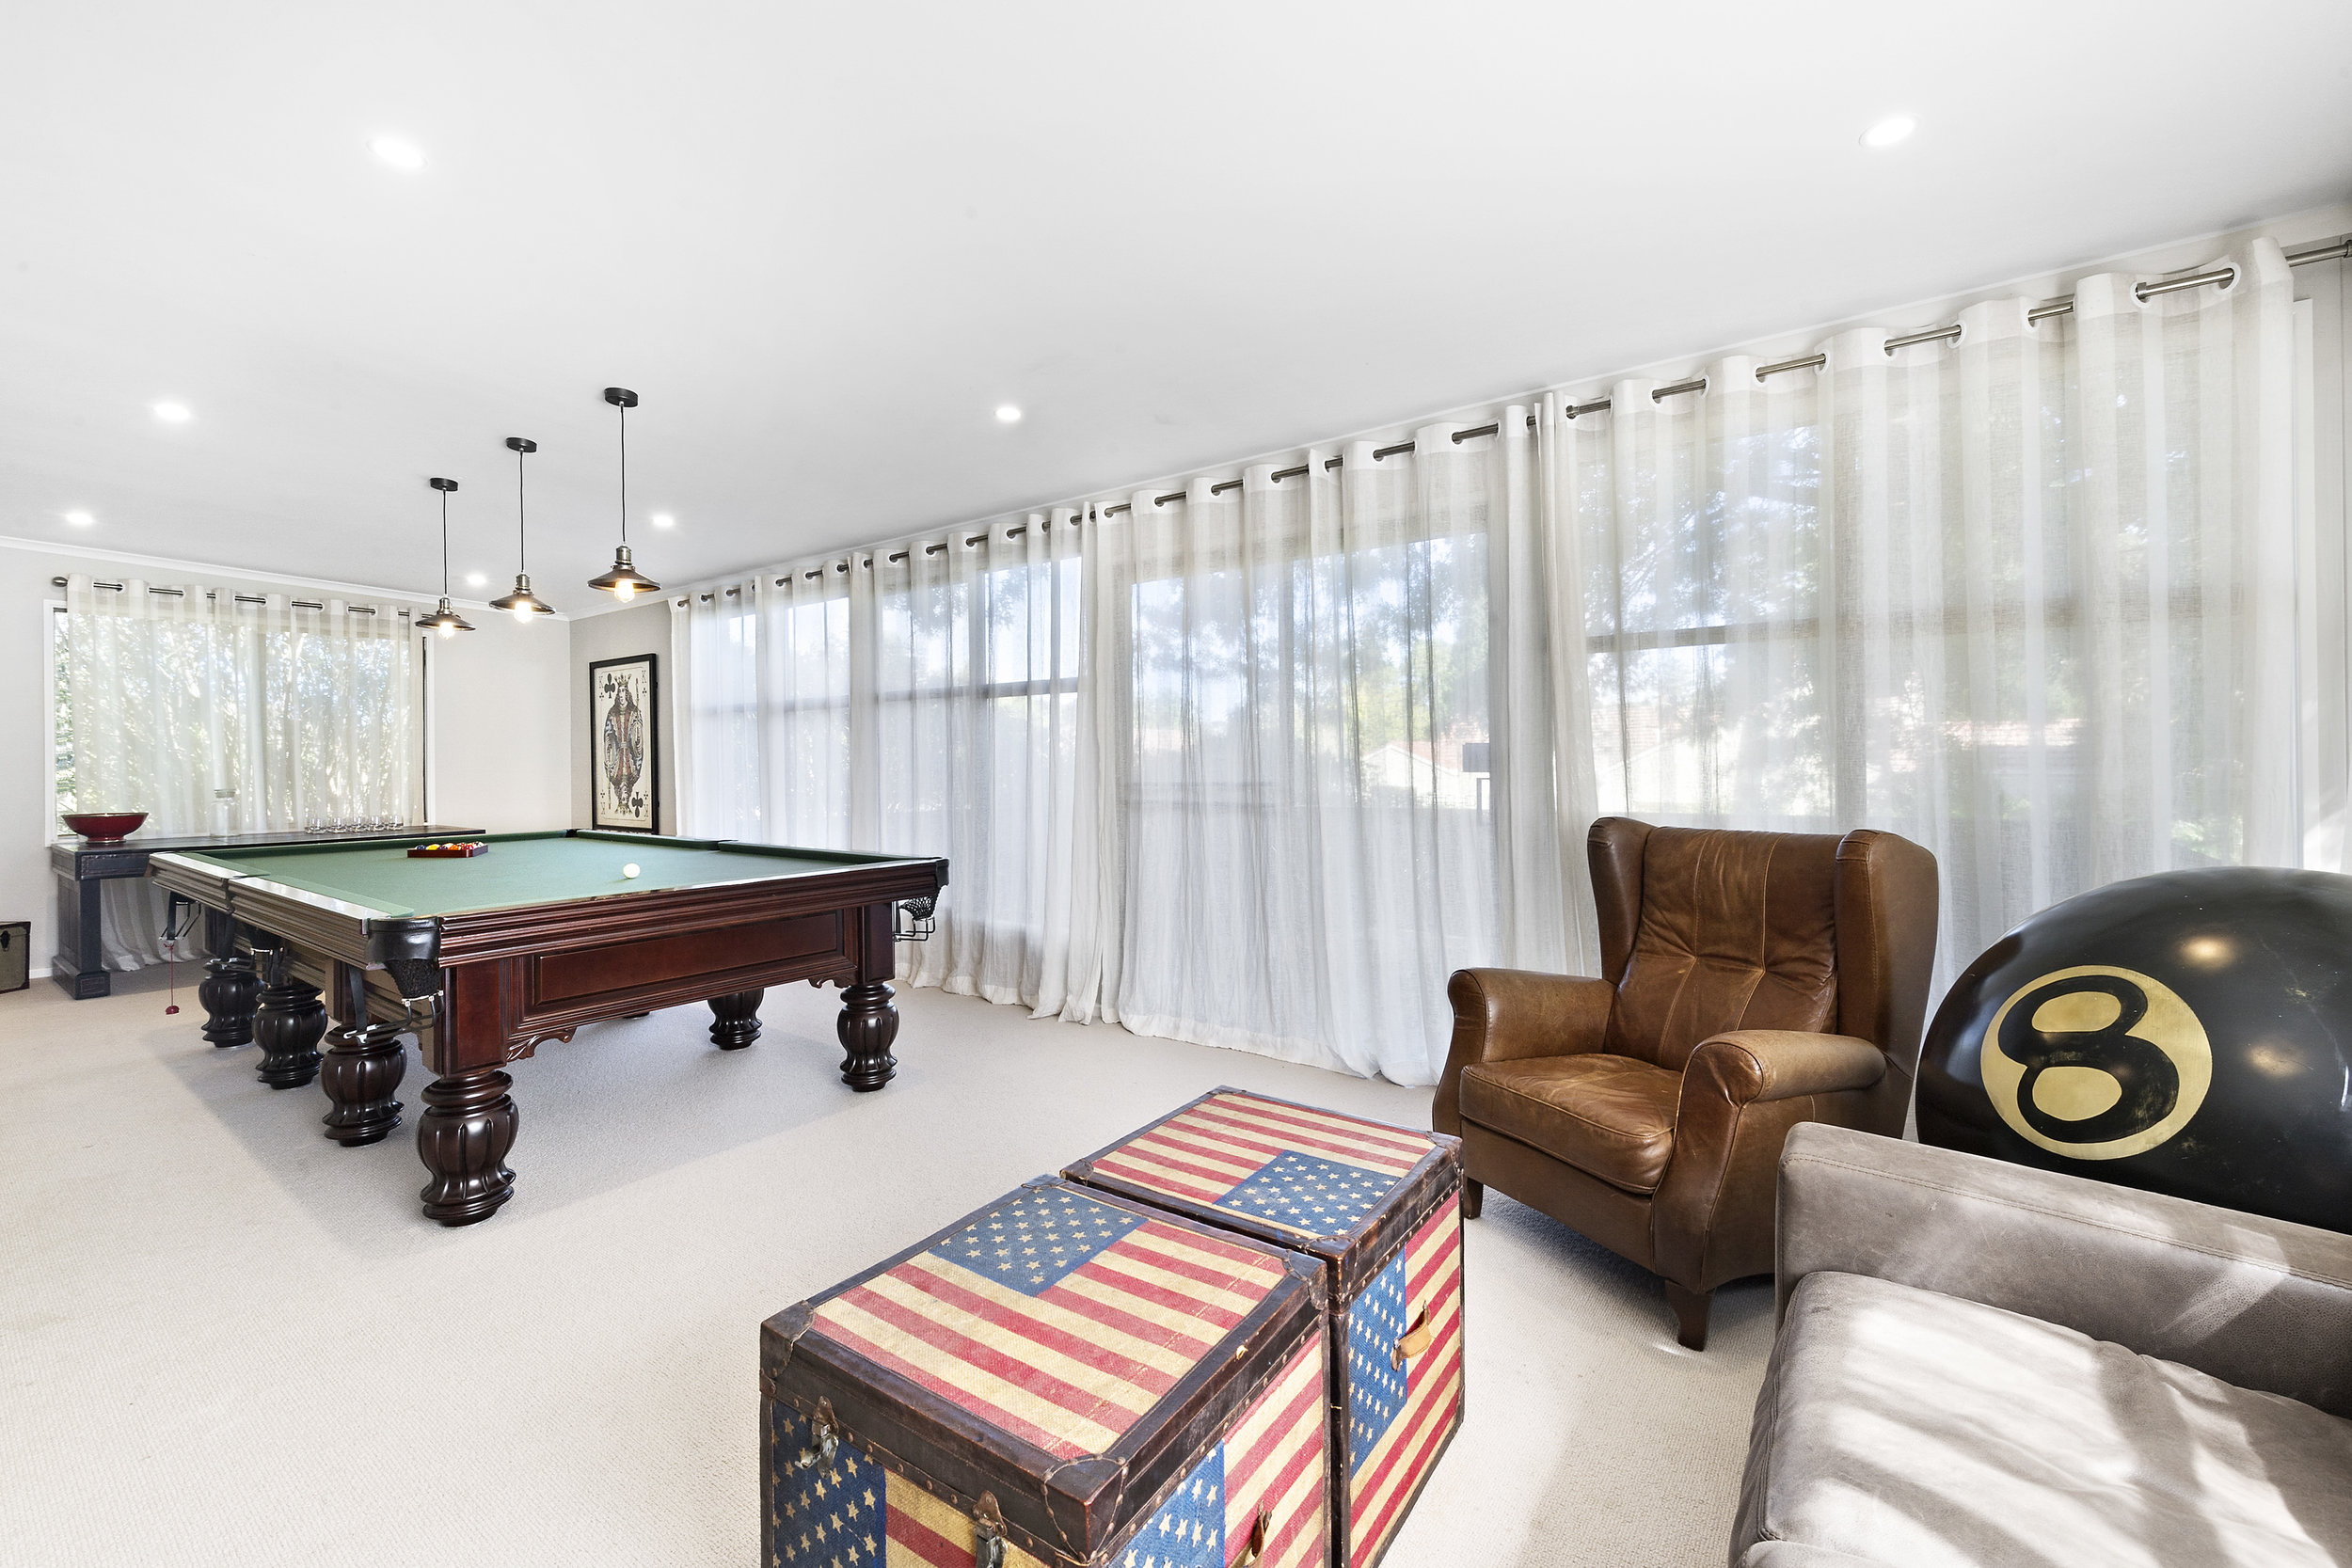 Photo of games room taken by Shutter Speed Studios